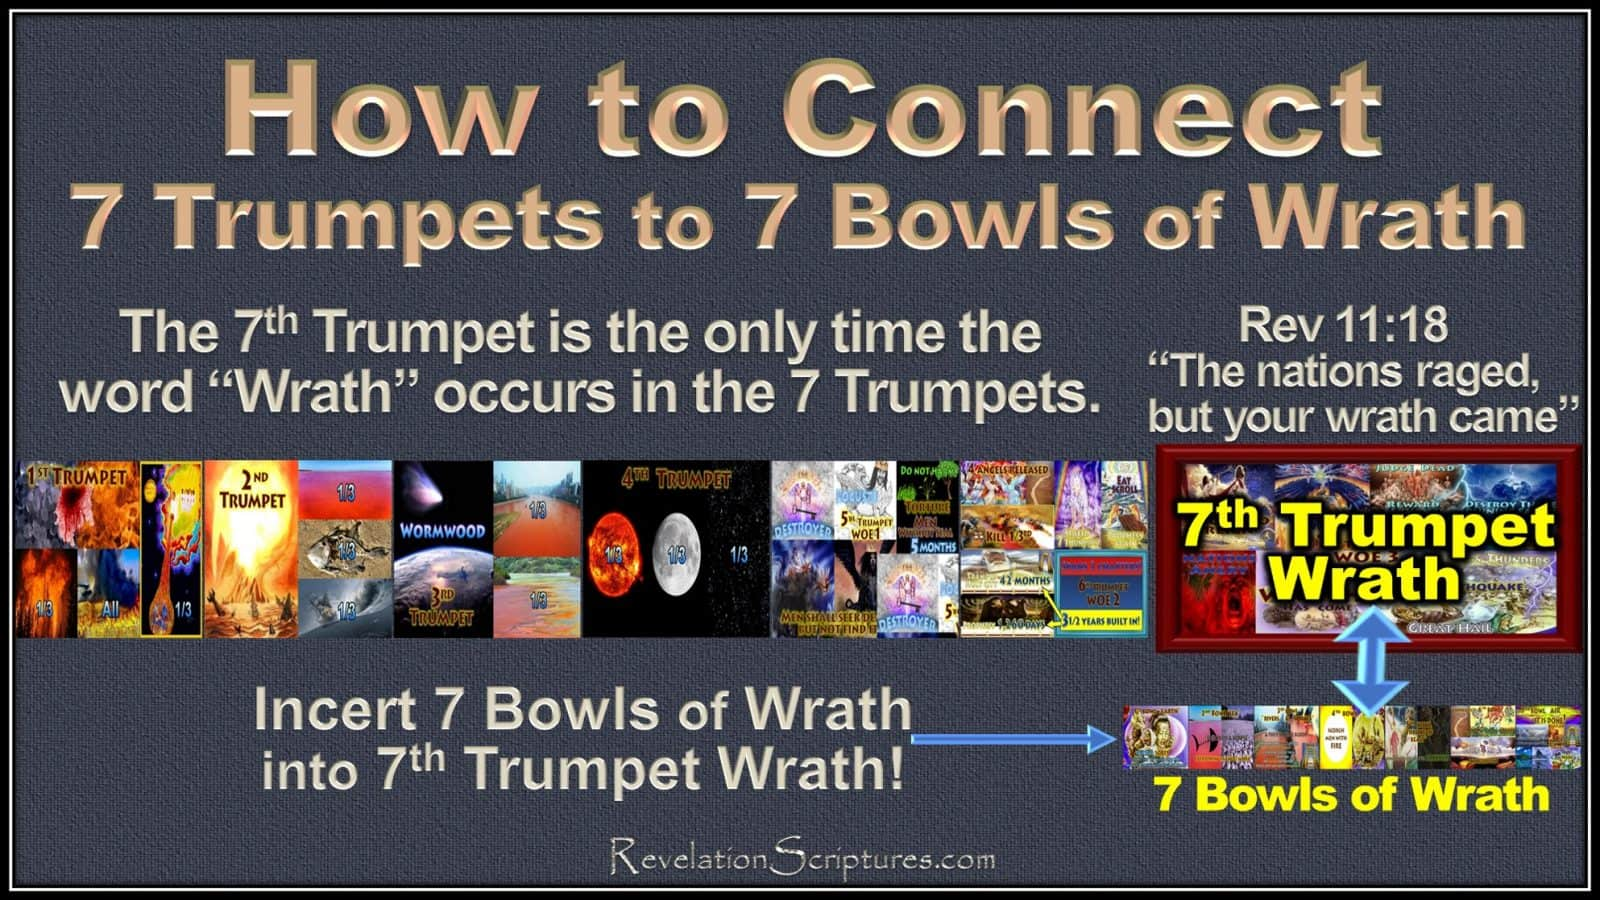 Book of Revelation,the Book of Revelation,7 Seals,7 Trumpets,7 Bowls of Wrath, how to connect,connecting 7 Seals to 7 Trumpets,Connecting 7 Seals to 7 Bowls of Wrath,Connecting 7 Seals to 7 Trumpets to 7 Bowls of Wrath,How to connect the timelines of Revelation,connecting the timelines of Revelation,connecting the events of Revelation,connect 7 Trumpets to 7 Bowls,connect trumpets and Bowls,connect Trumpets and Vials,how to connect the trumpets to bowls,7th Trumpet wrath,wrath,wrath in 7th Trumpet,Seventh Trumpet,join,blend,merge,connect,big picture,Rev 11,Revelation 11, 7 Seals,7Bowls,7 Bowls of Wrath,7 Vials,7 Vials of wrath,How to connect 7 Seals to 7 Bowls, Connect 7 Seals to 7 Bowls,connect 7 Seals to 7 Vials of Wrath,How to Join 7 Seals to 7 Bowls,Join Seals and Bowls,join Seals and Viles,6th Seal,Day of Wrath,great day of their wrath,merge 7 Seals to 7 Bowls,connect Seals to Bowls,Merge 7 Seals to 7 Vials,Book of Revelation,Wrath to Wrath,connect wrath to wrath,align Seals with Bowls,Align Seals to Vials,line up seals to Bowls,line up seals to vials,Line up 7 Seals to 7 Bowls,Rev 15,Rev 16,Revelation 15,Revelation 16,Rev 6,Revelation 6